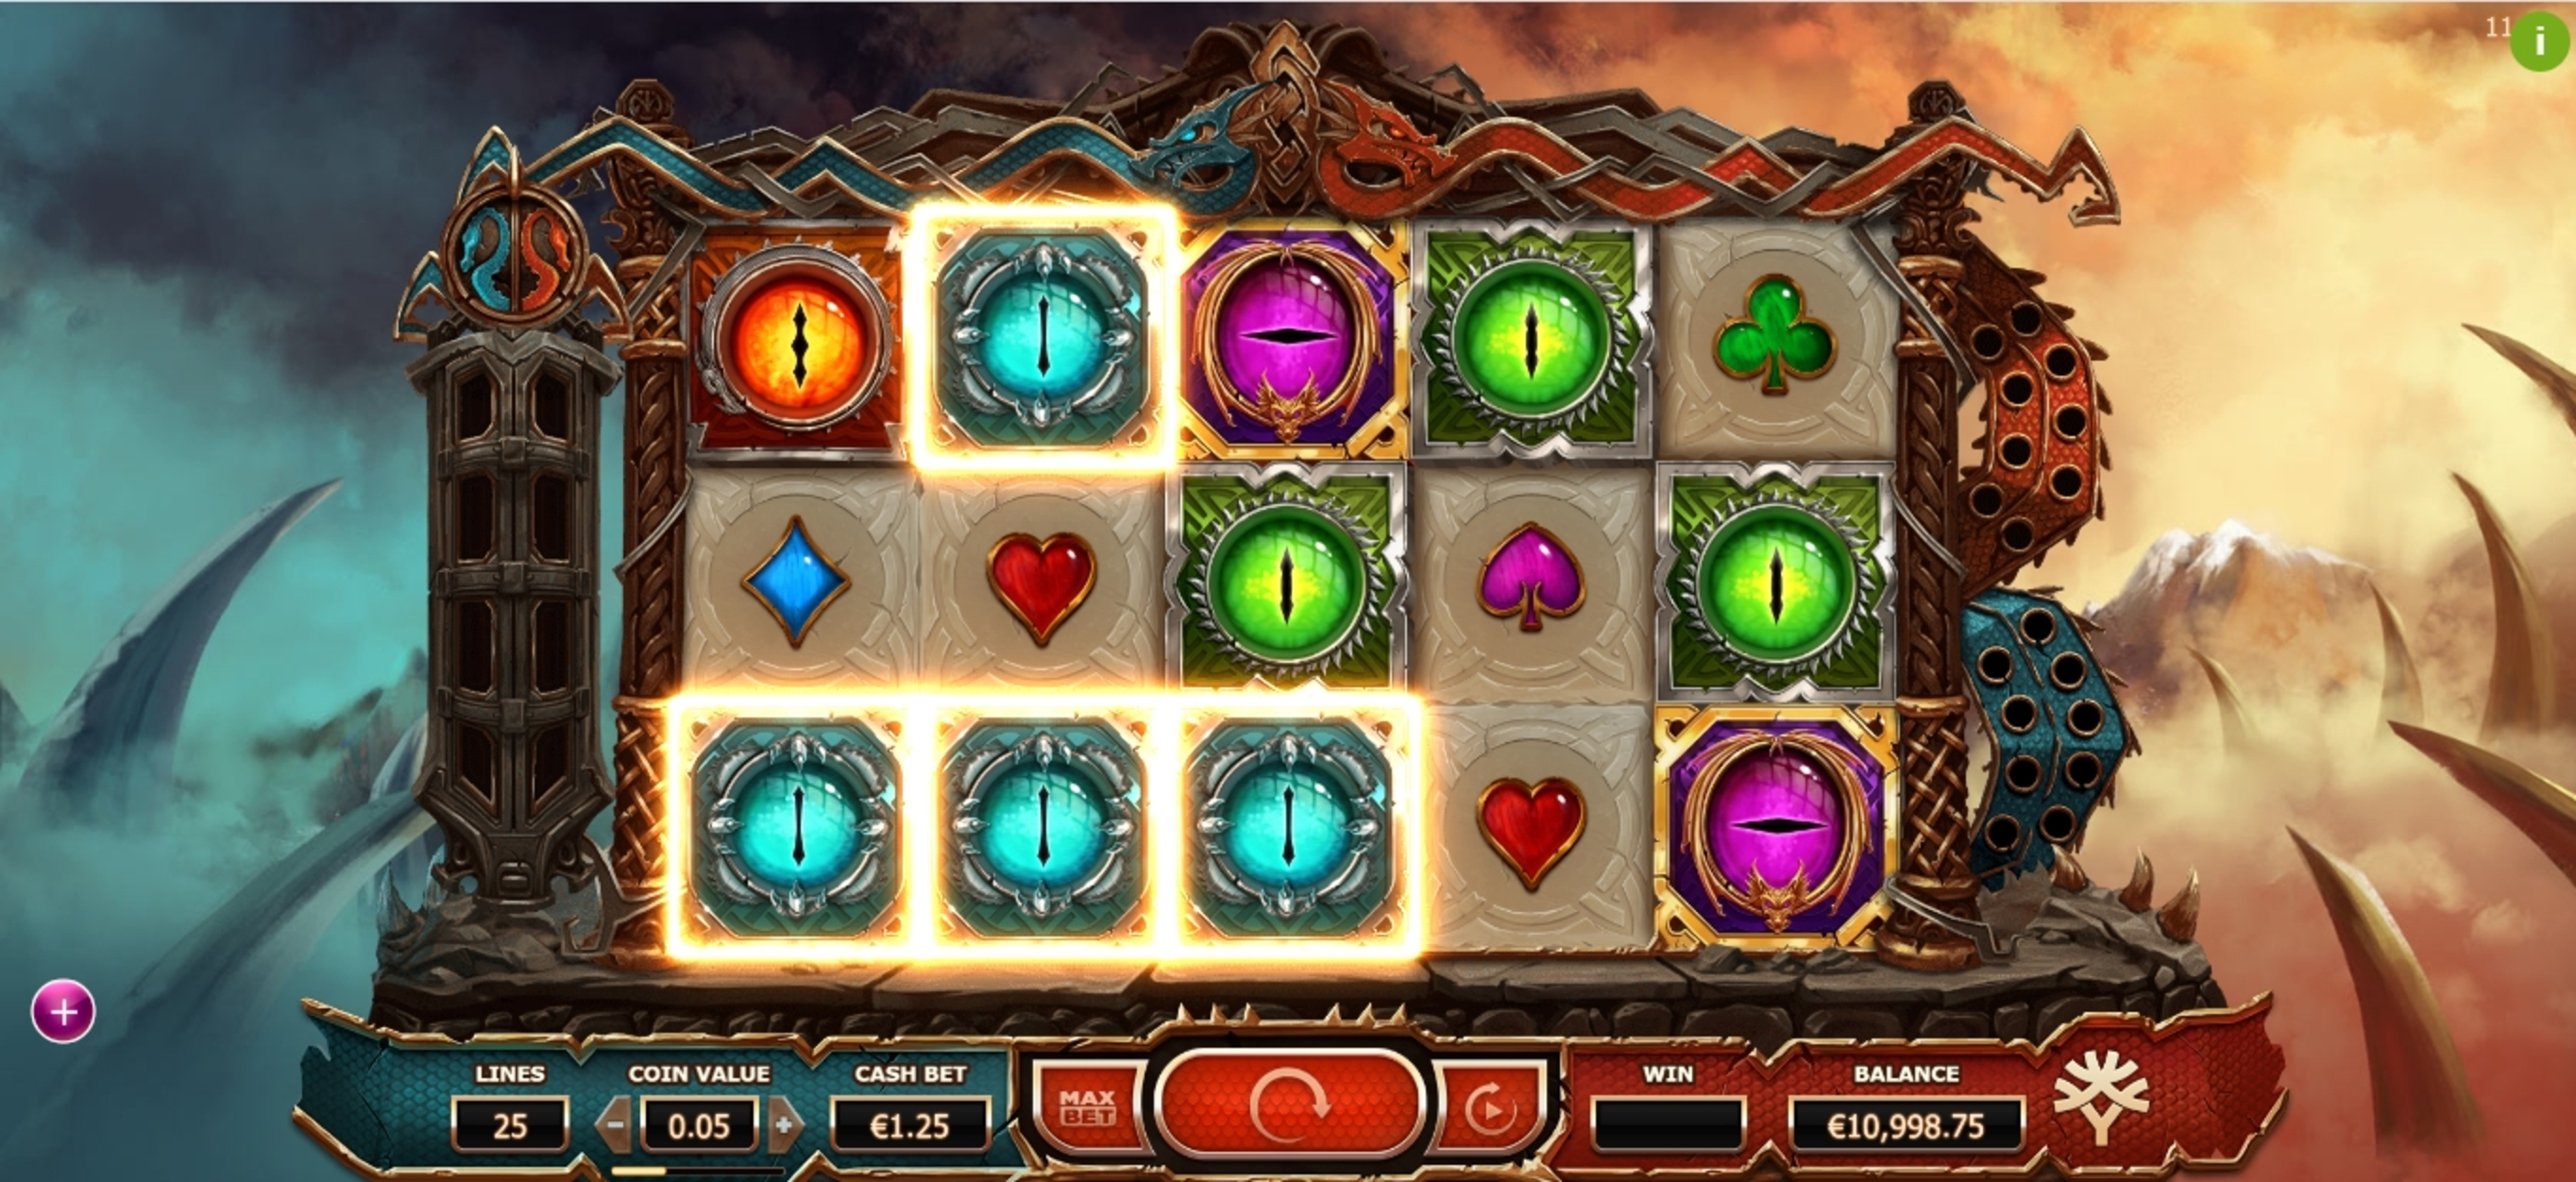 Win Money in Double Dragons Free Slot Game by Yggdrasil